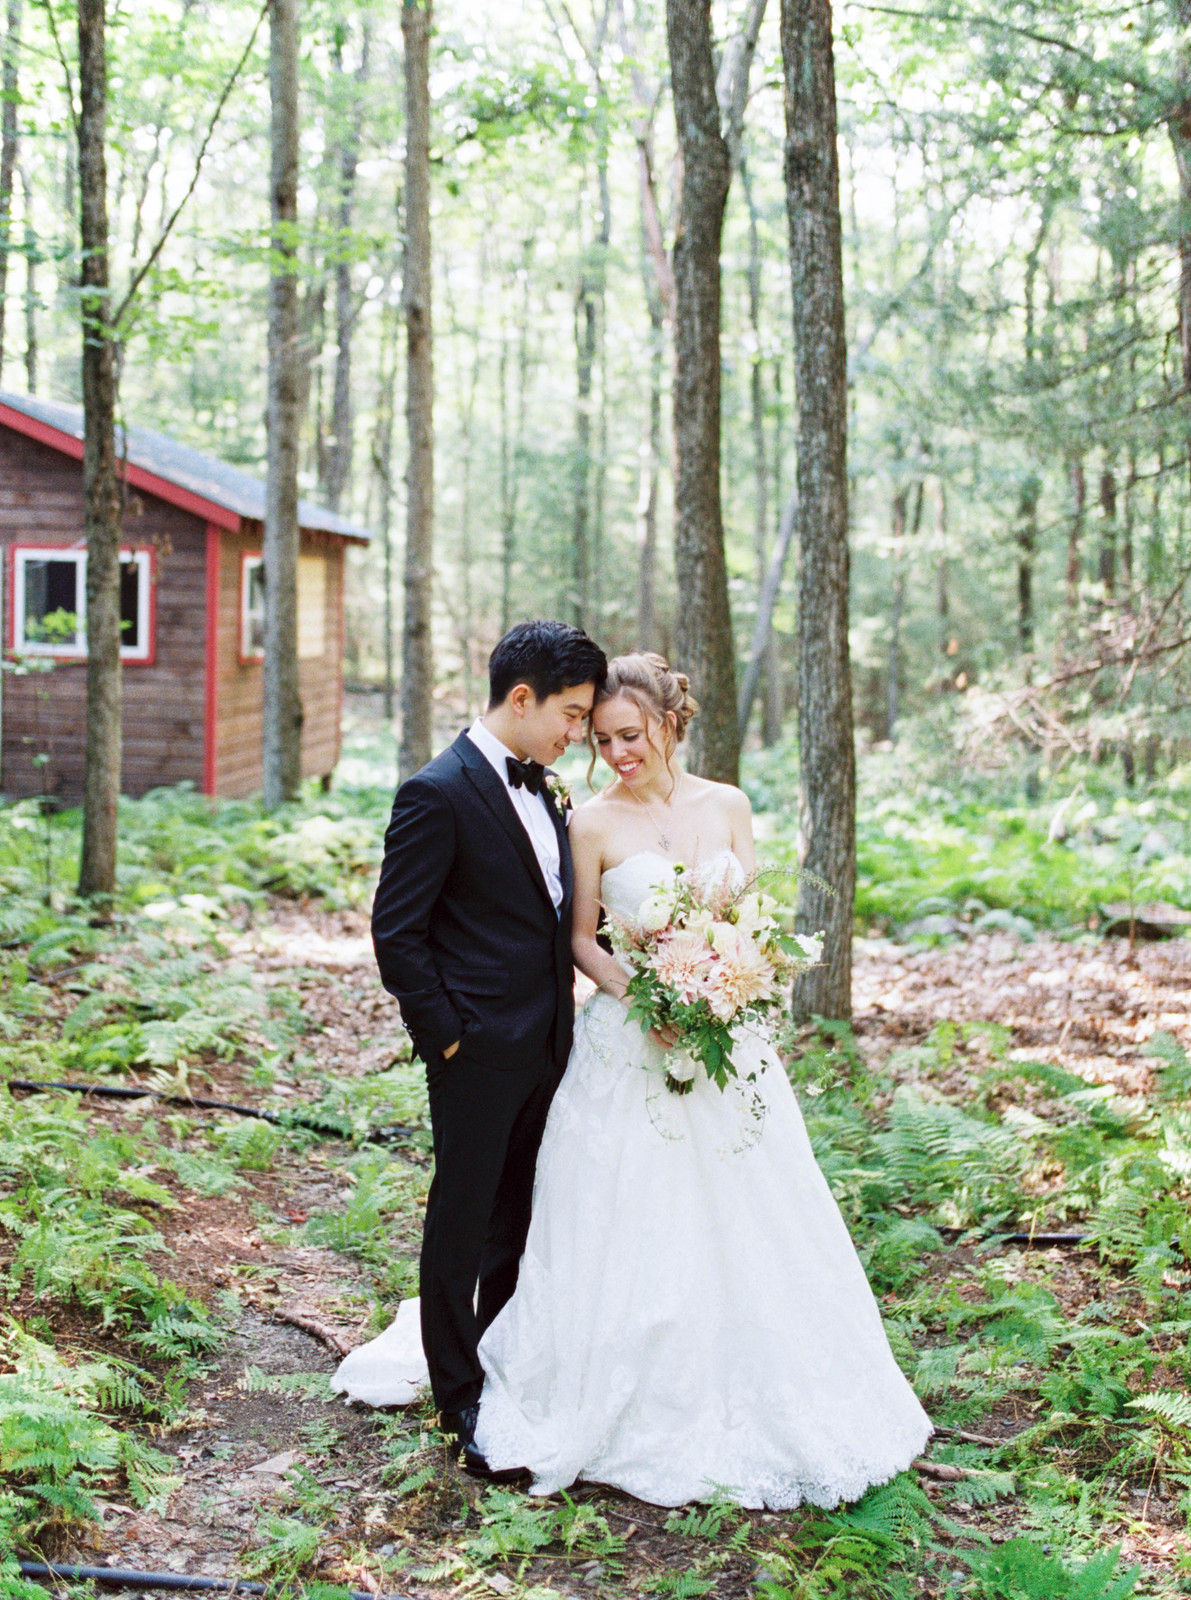 Wedding In The Woods At Camp Timber Tops Venue